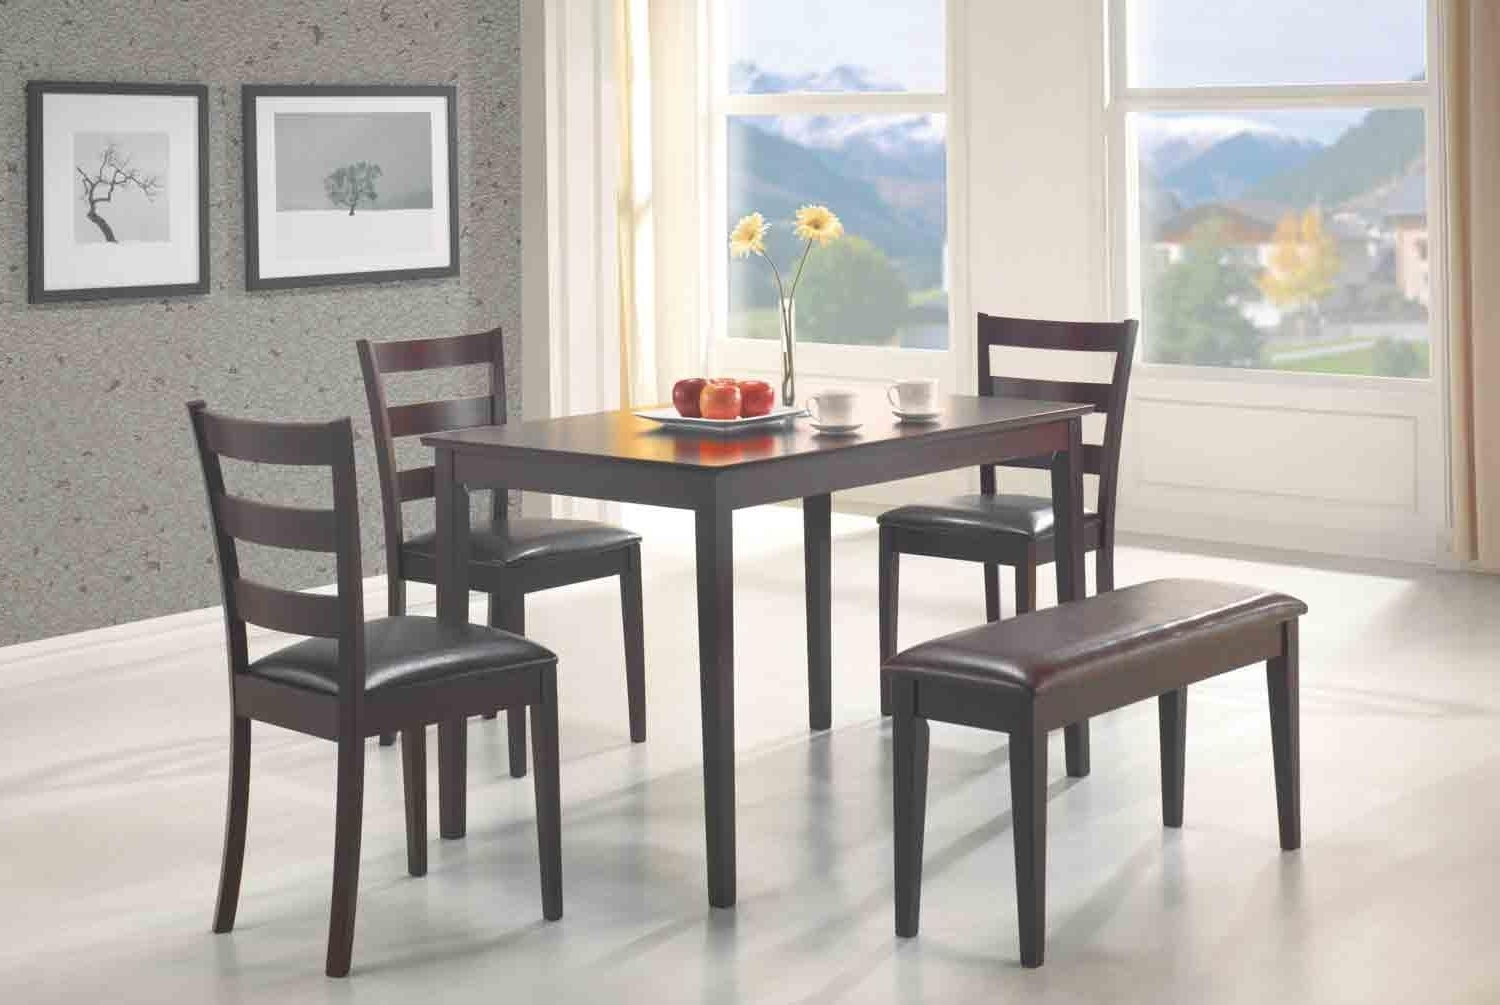 Trendy Your Furniture Outlet » Dining Intended For Cheap Dining Tables And Chairs (View 22 of 25)